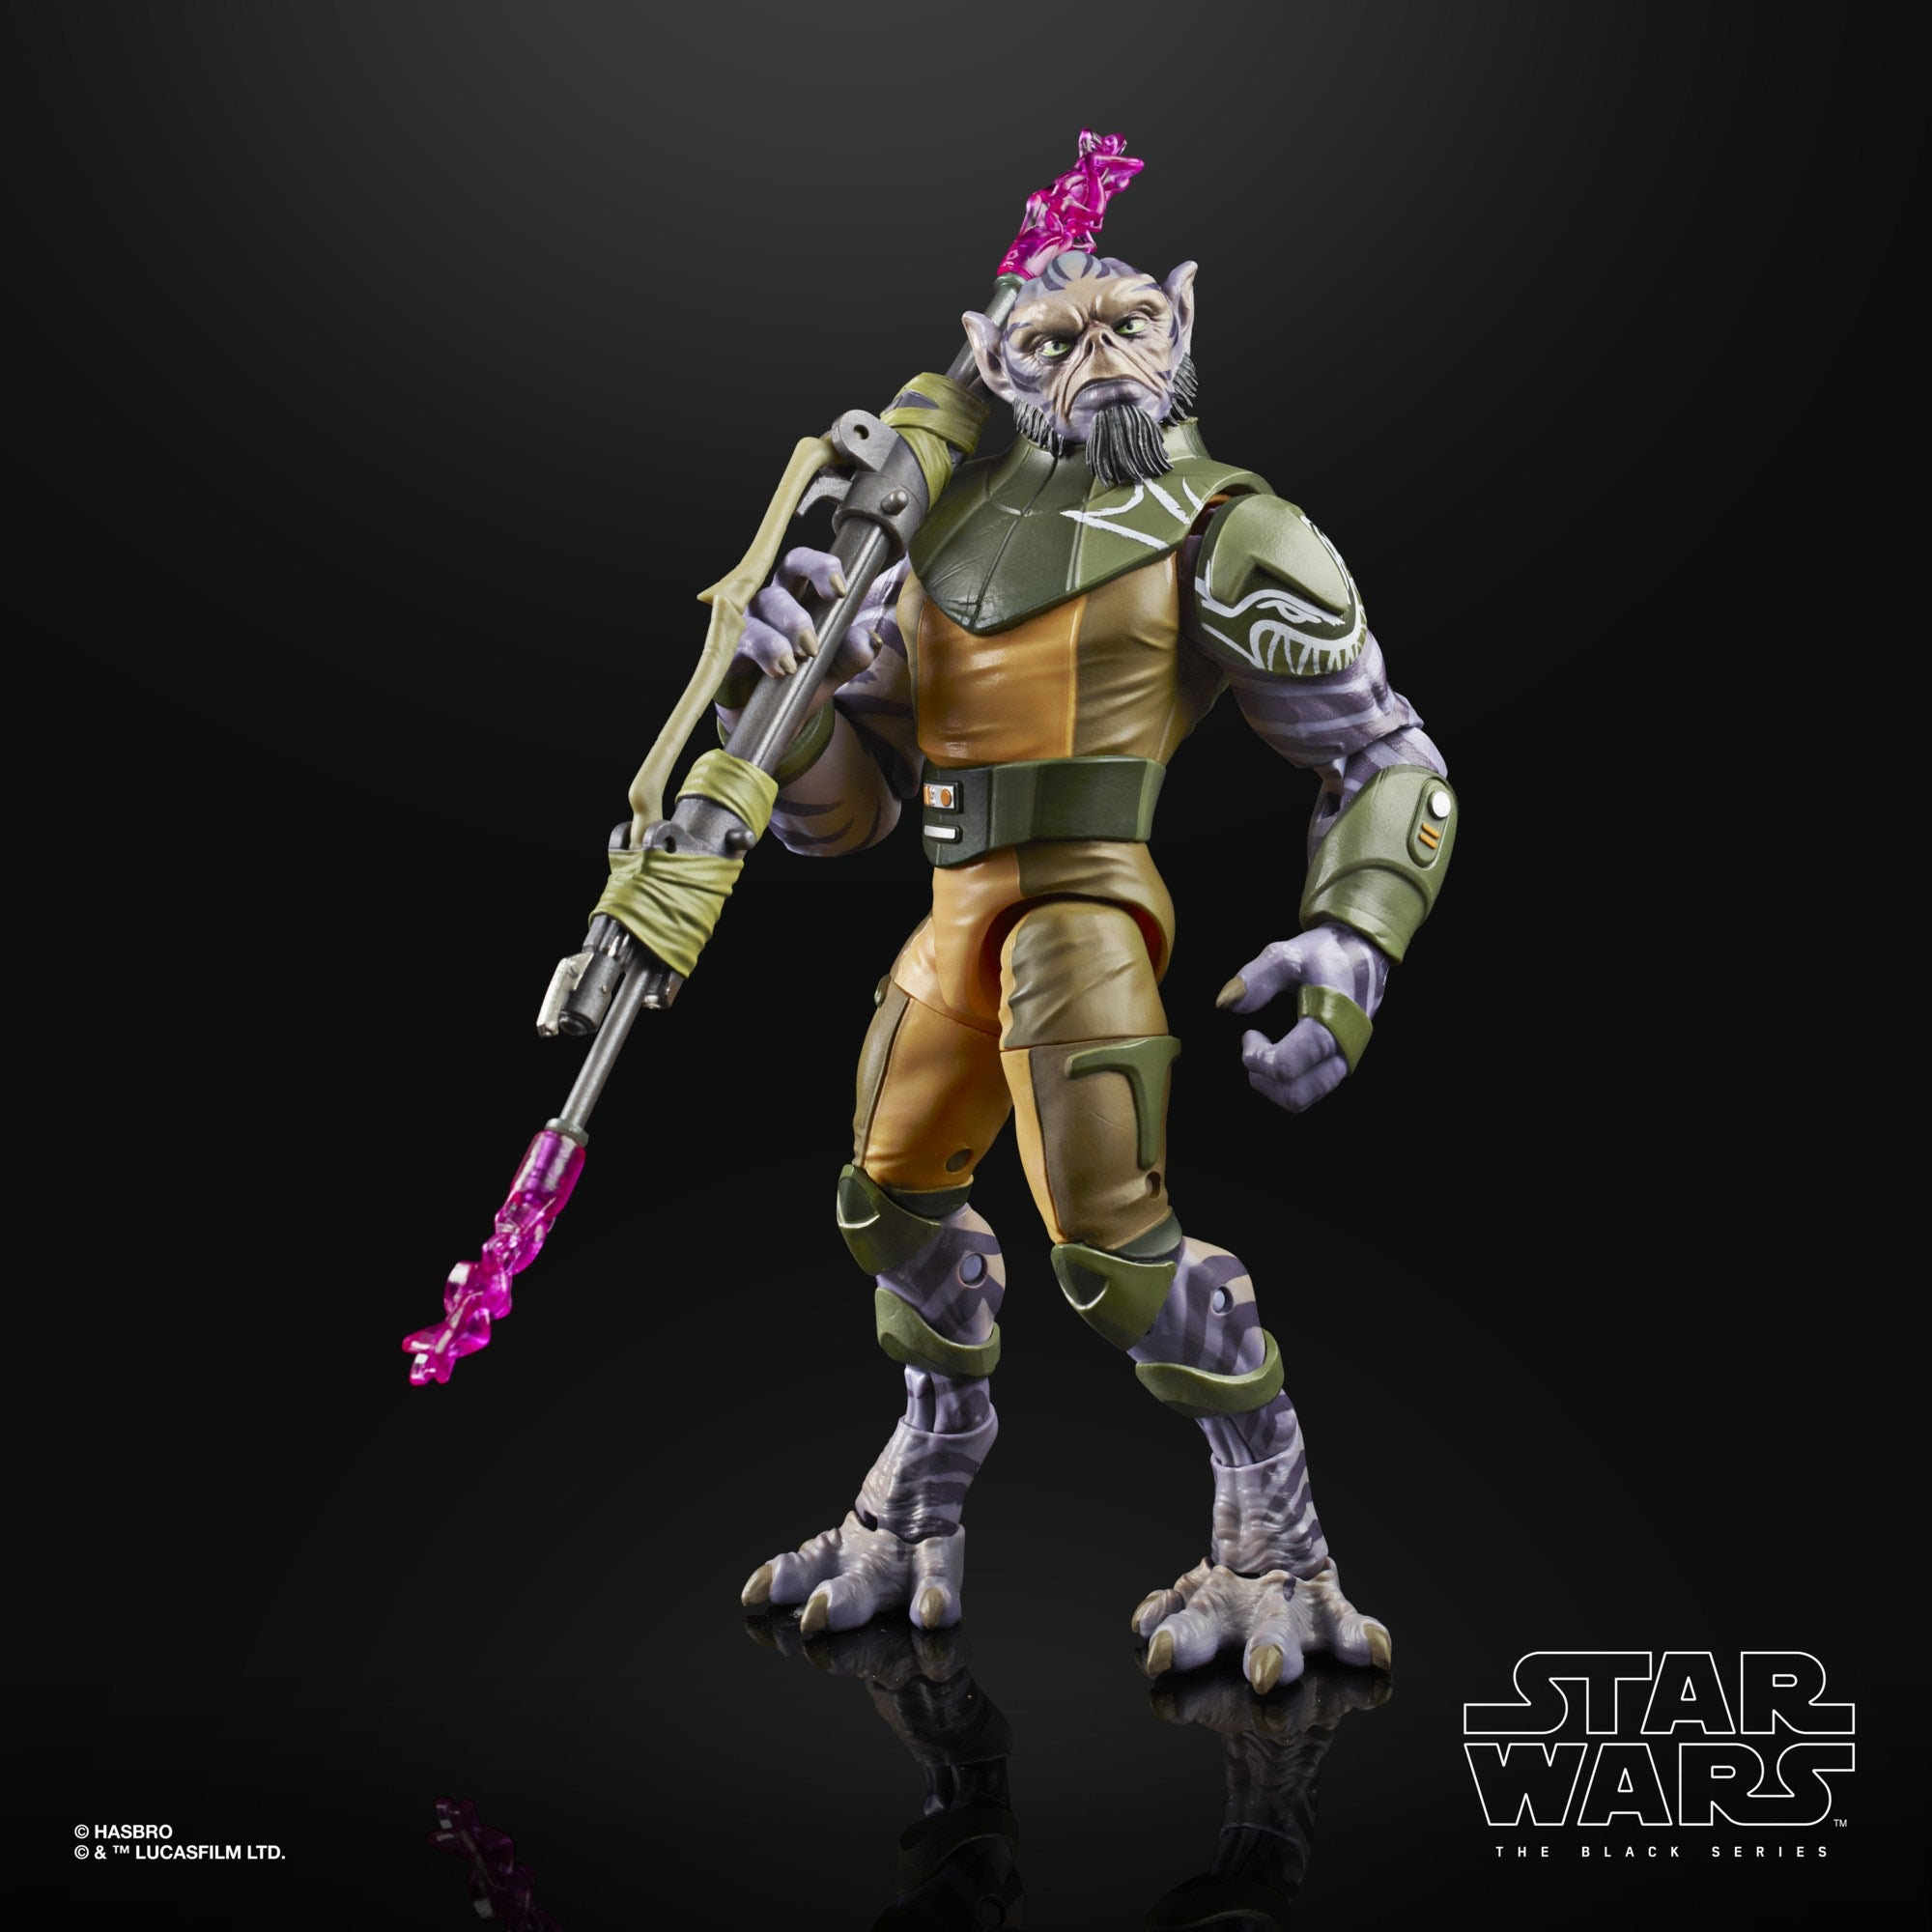 Image of Star Wars The Black Series Rebels Zeb Orrelios 6-Inch Action Figure